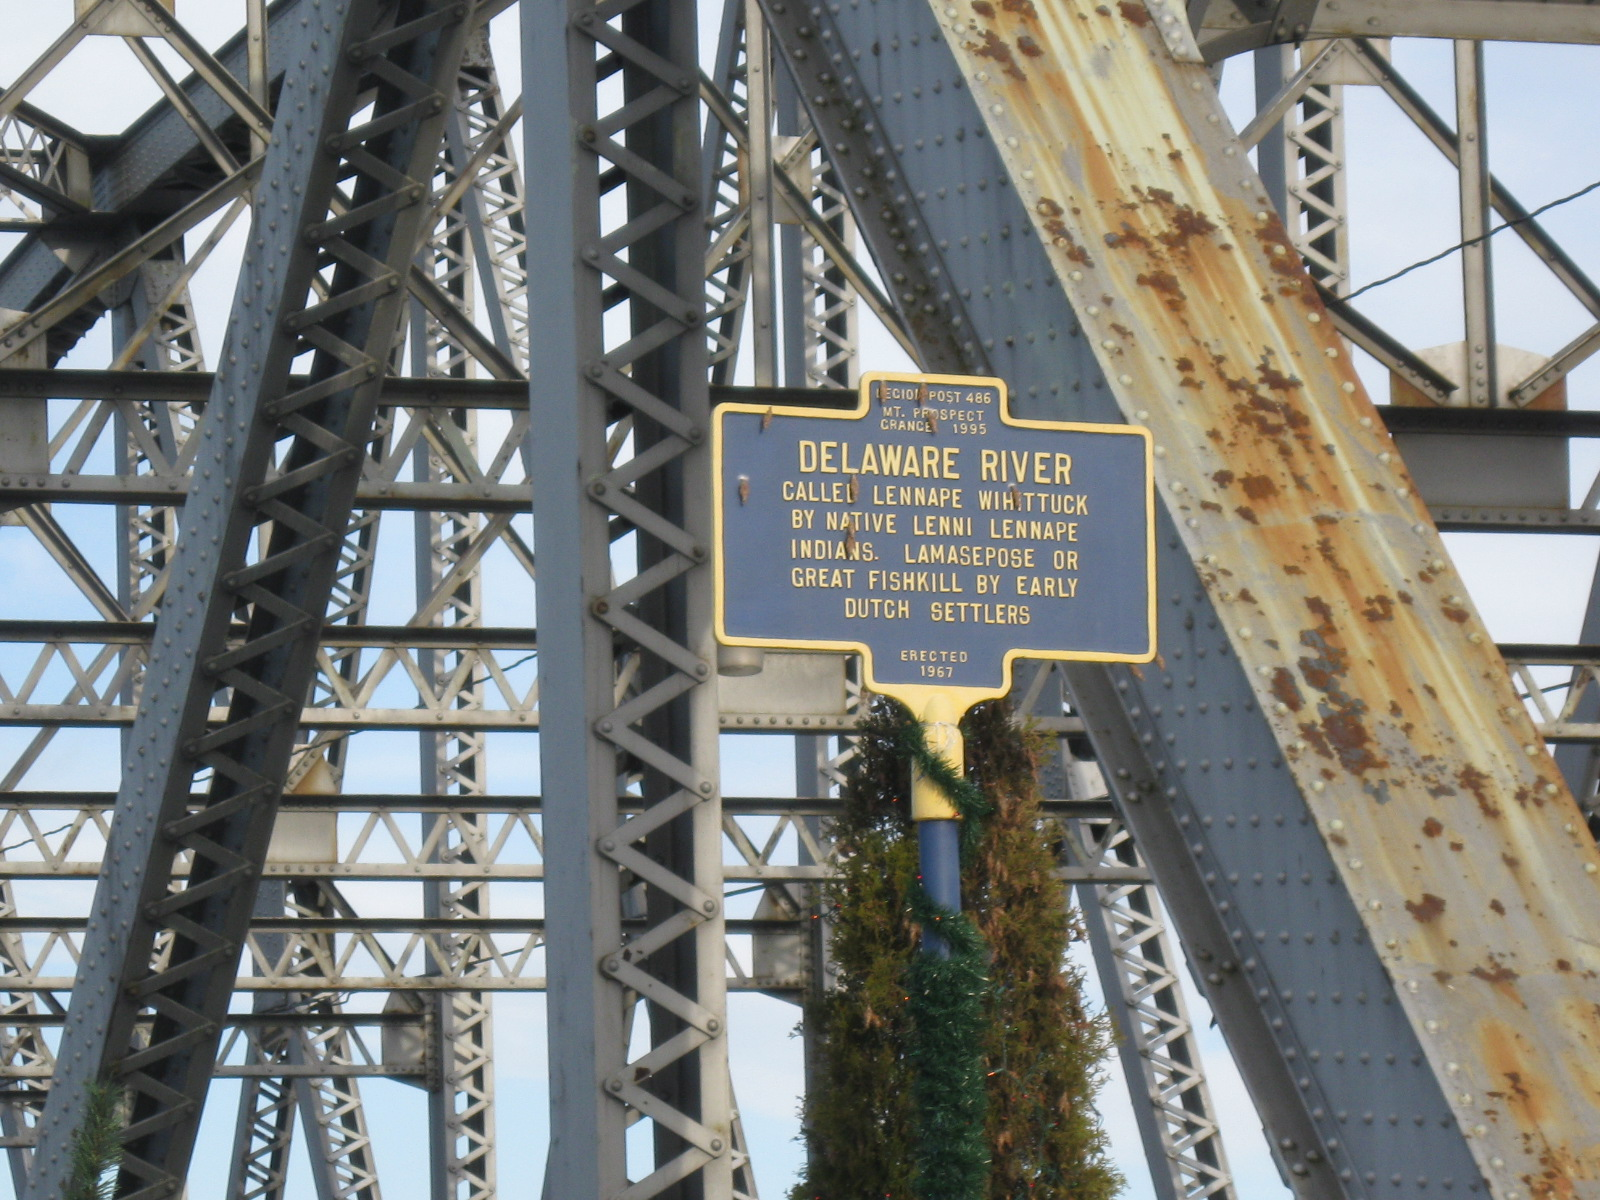 Matamoras (PA) United States  City pictures : Delaware River sign in Matamoras, PA Wikipedia, the free ...